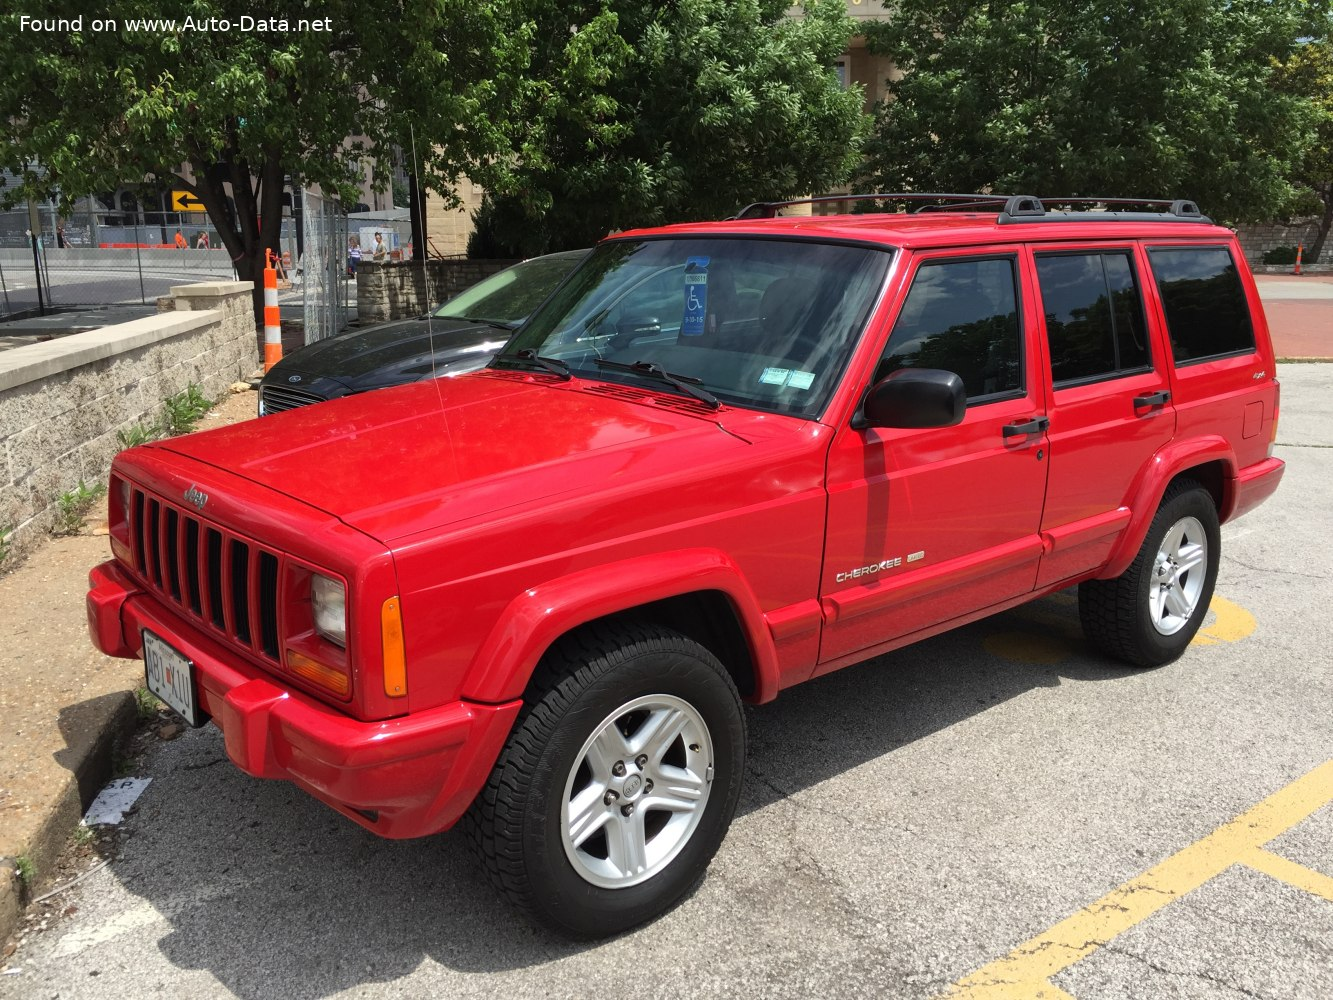 1999 Jeep Cherokee Ii Xj 4 0 I Sport 192 Hp Technical Specs Data Fuel Consumption Dimensions